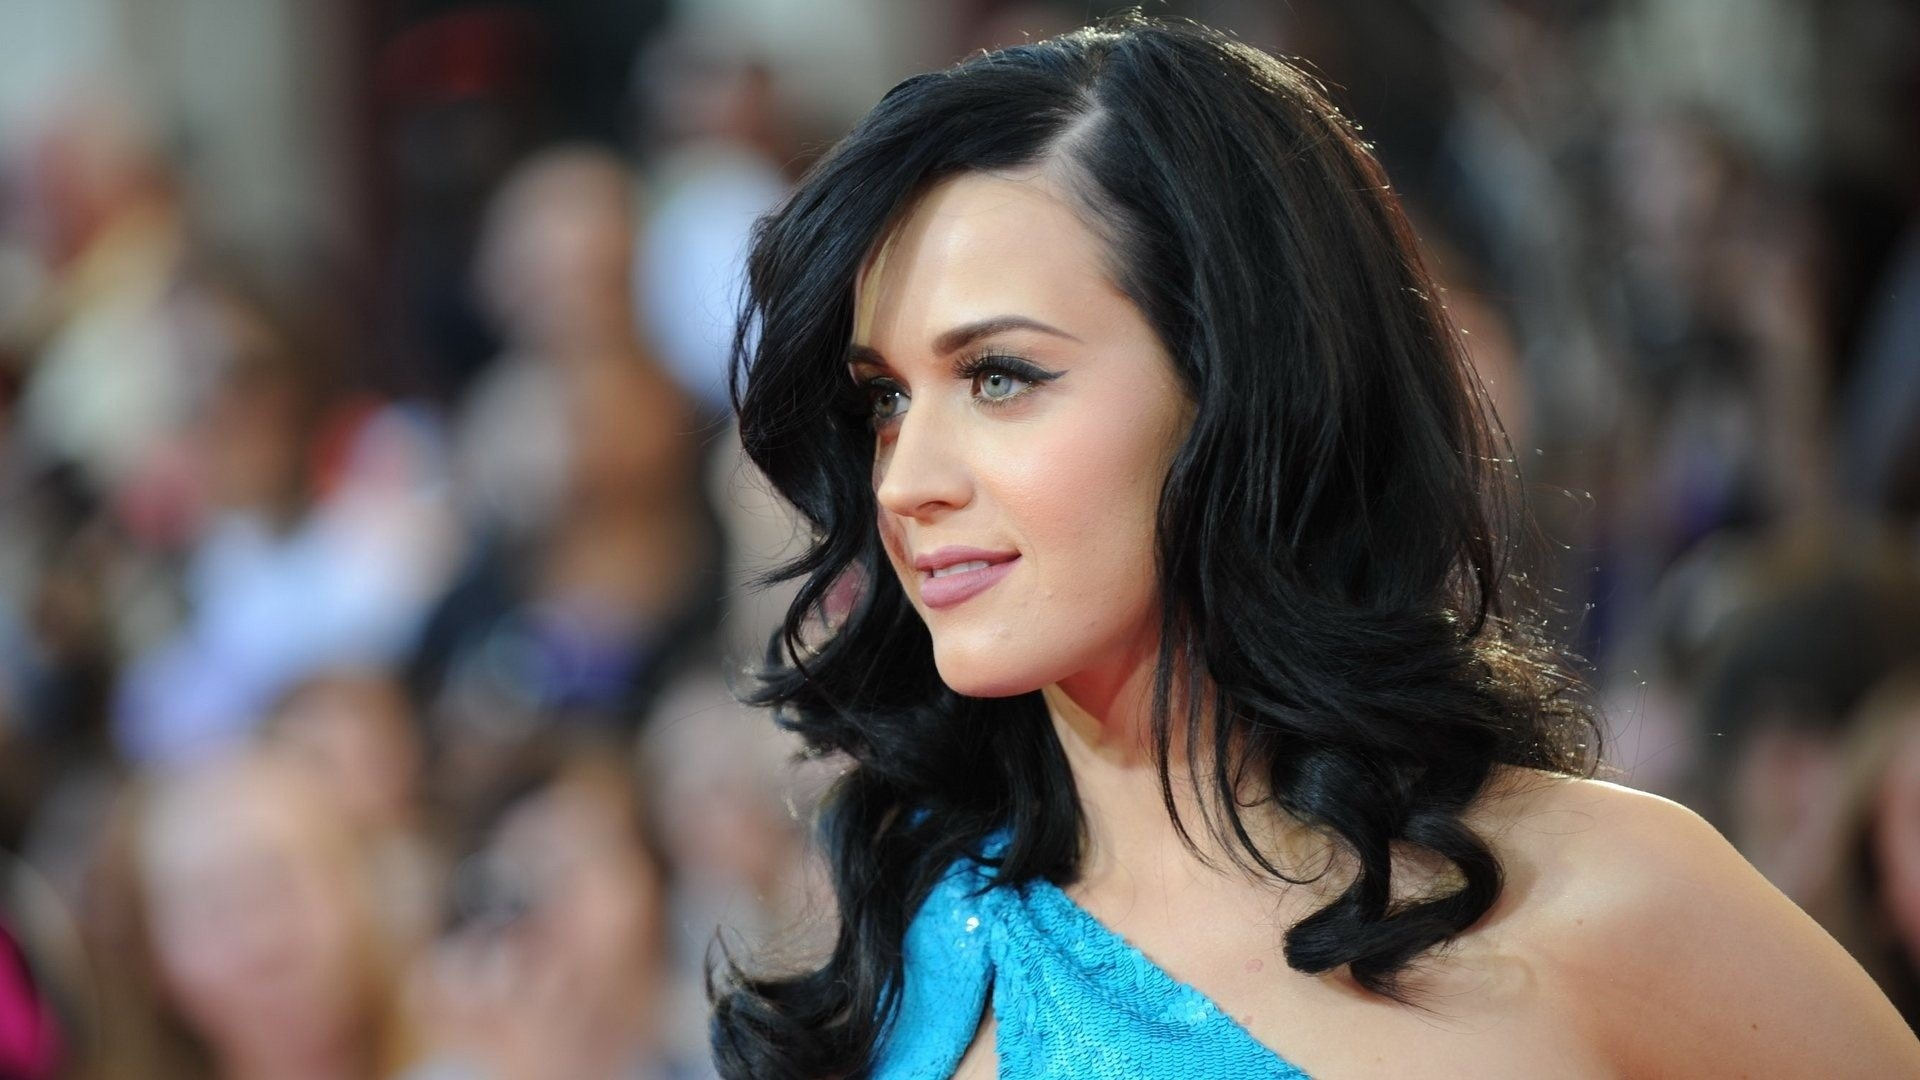 katy perry download